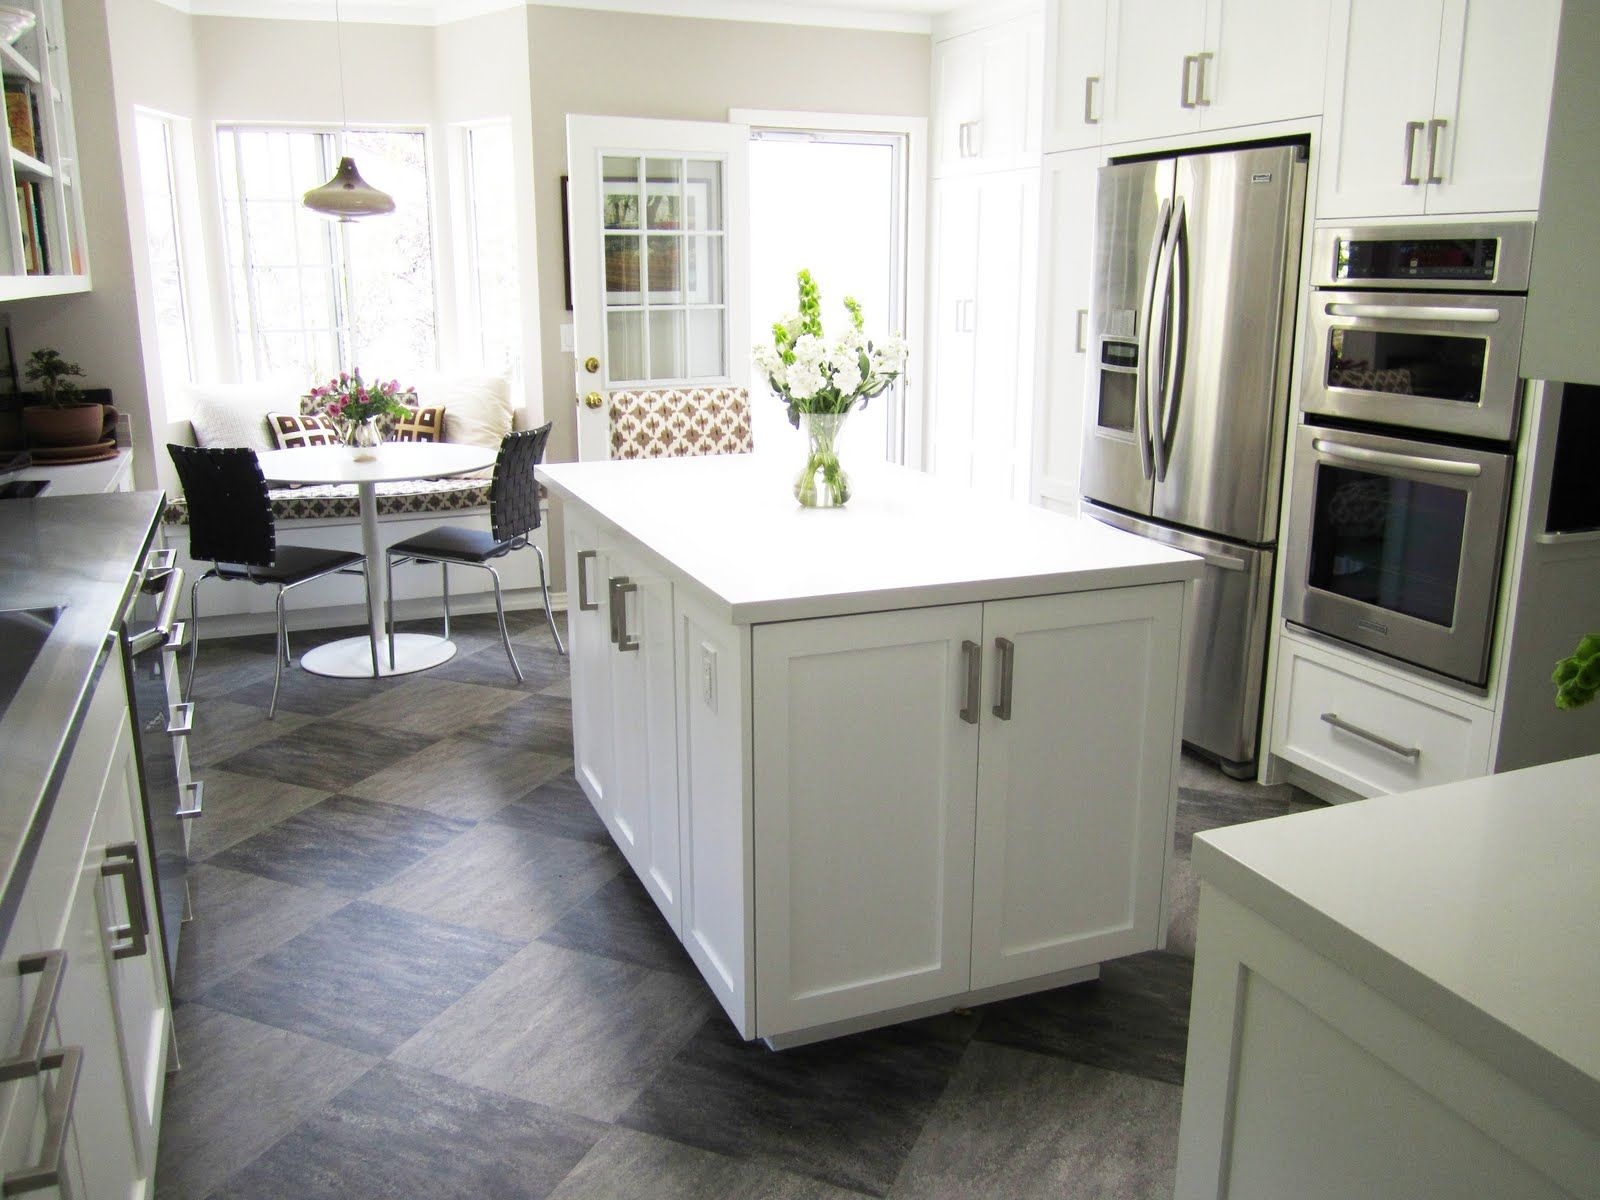 Expensive Modern Kitchen Shape Interior (With images) L